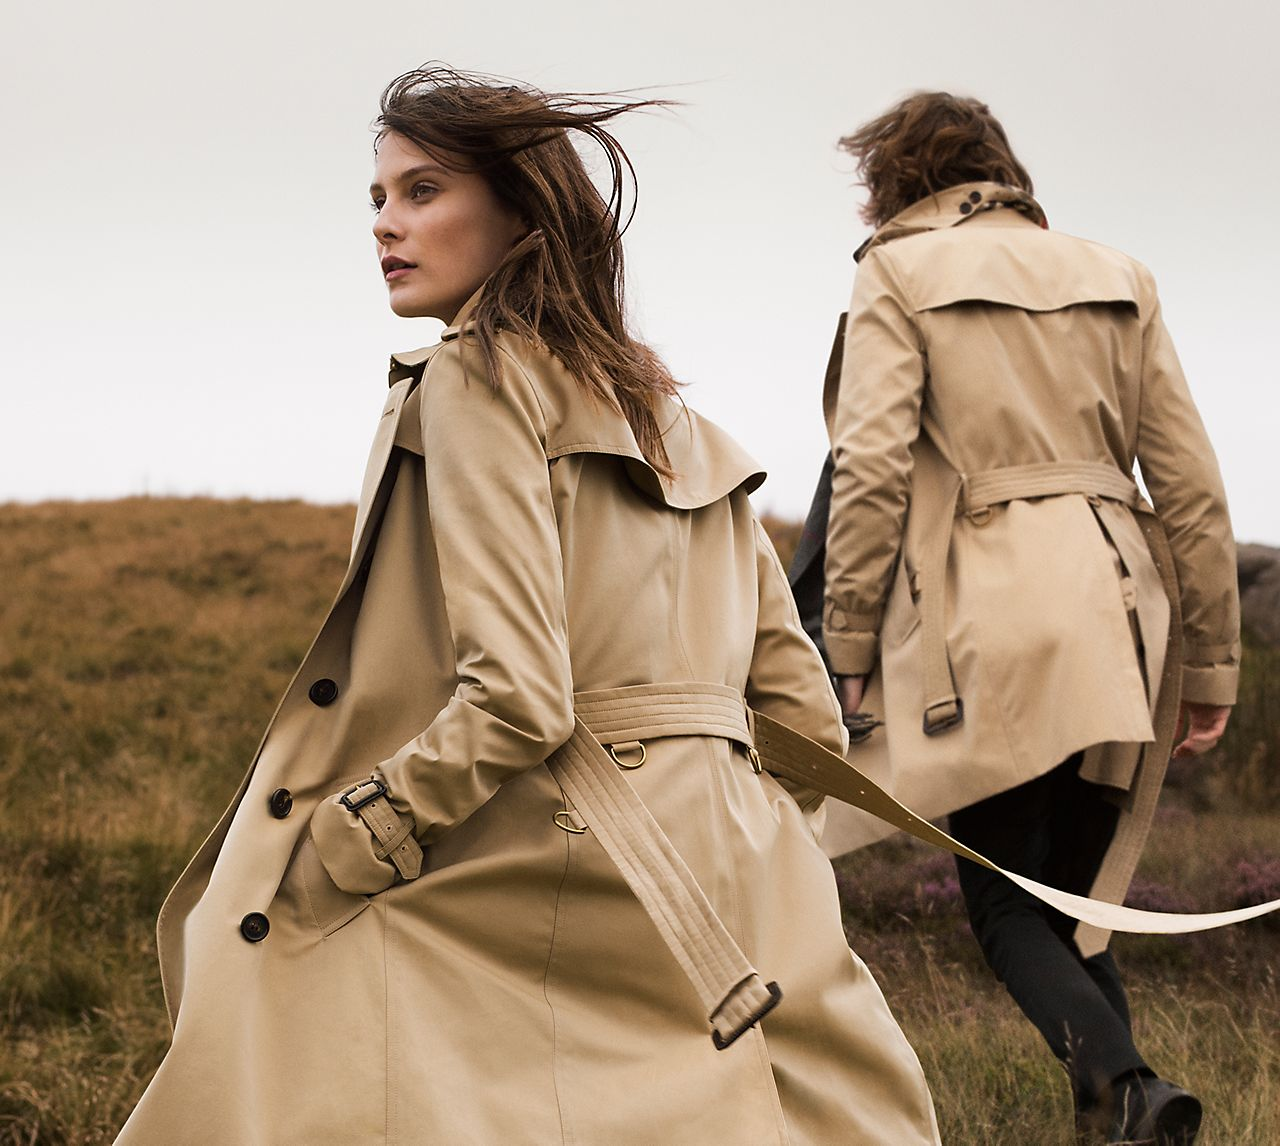 El trench coat Heritage Disponible para personalizar